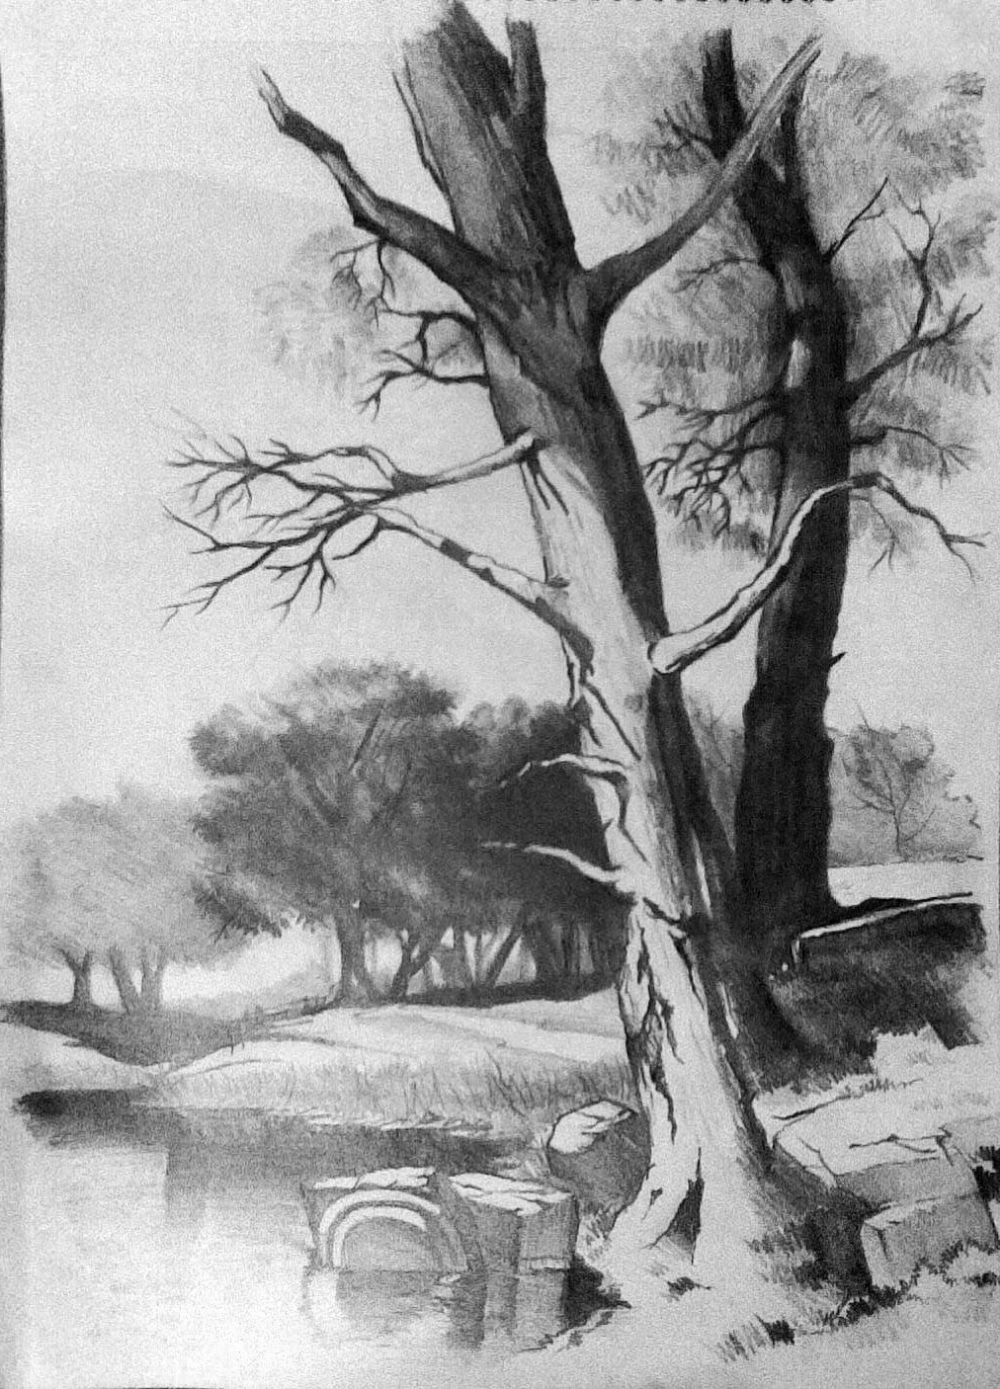 Scenery Pencil Drawings And Scenery Paintings Search Result At Paintingvalley Traditionalart Drawings Ca Landscape Drawings Drawing Scenery Scenery Paintings